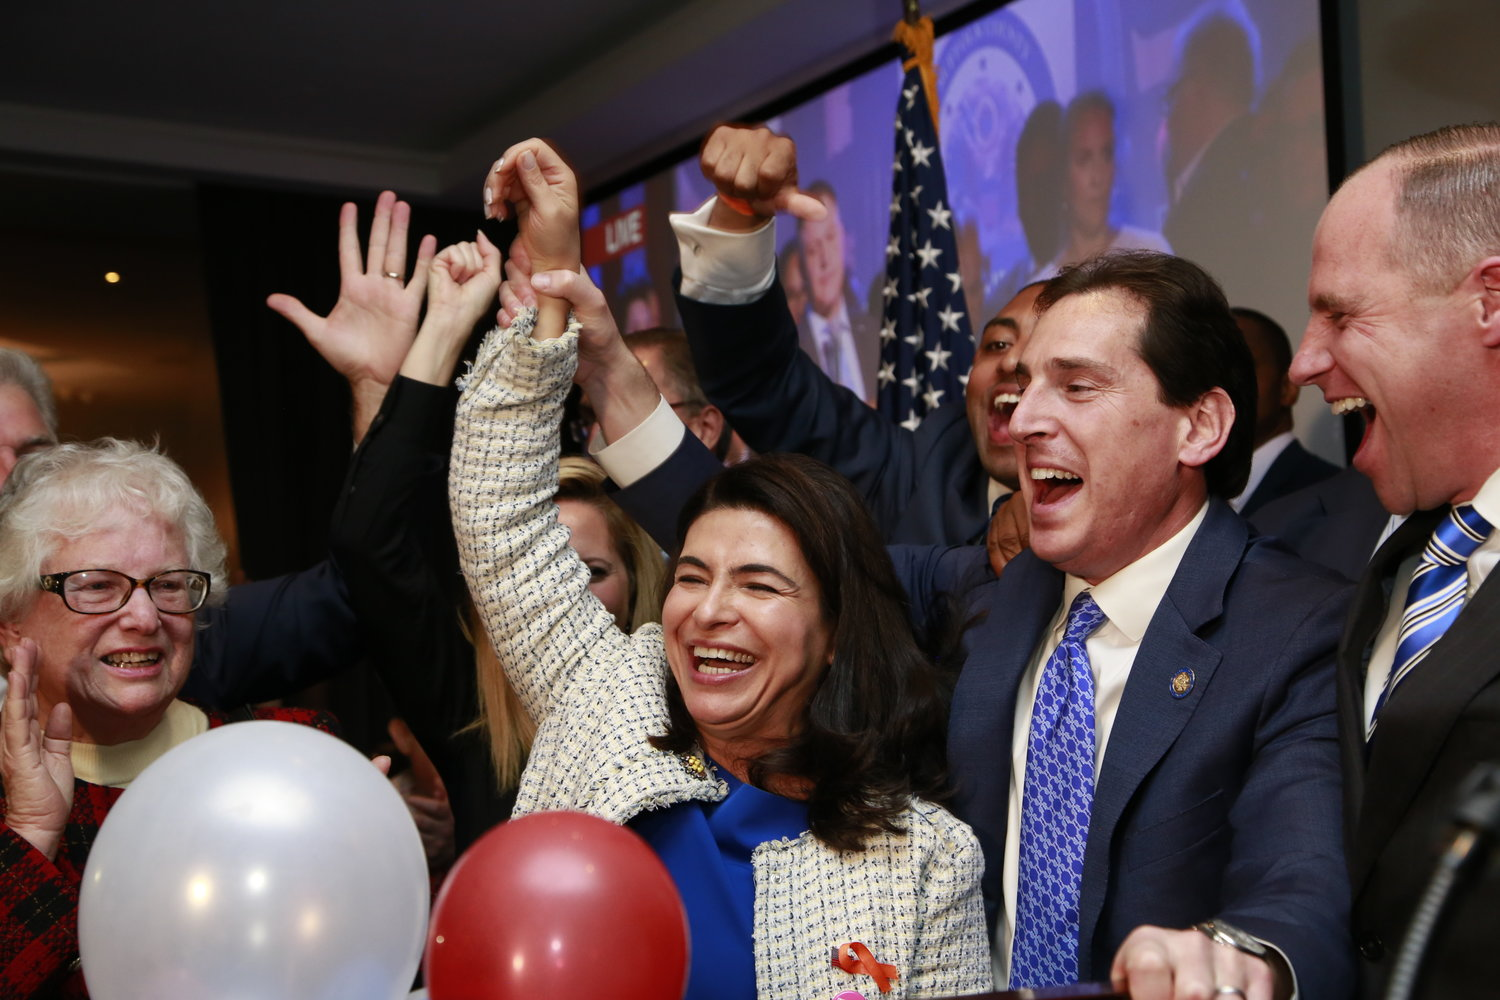 Anna Kaplan, with State Sen. Todd Kaminsky, was victorious in the 7th Senate District, defeating incumbent Elaine Phillips, and securing a Senate majority for Democrats.